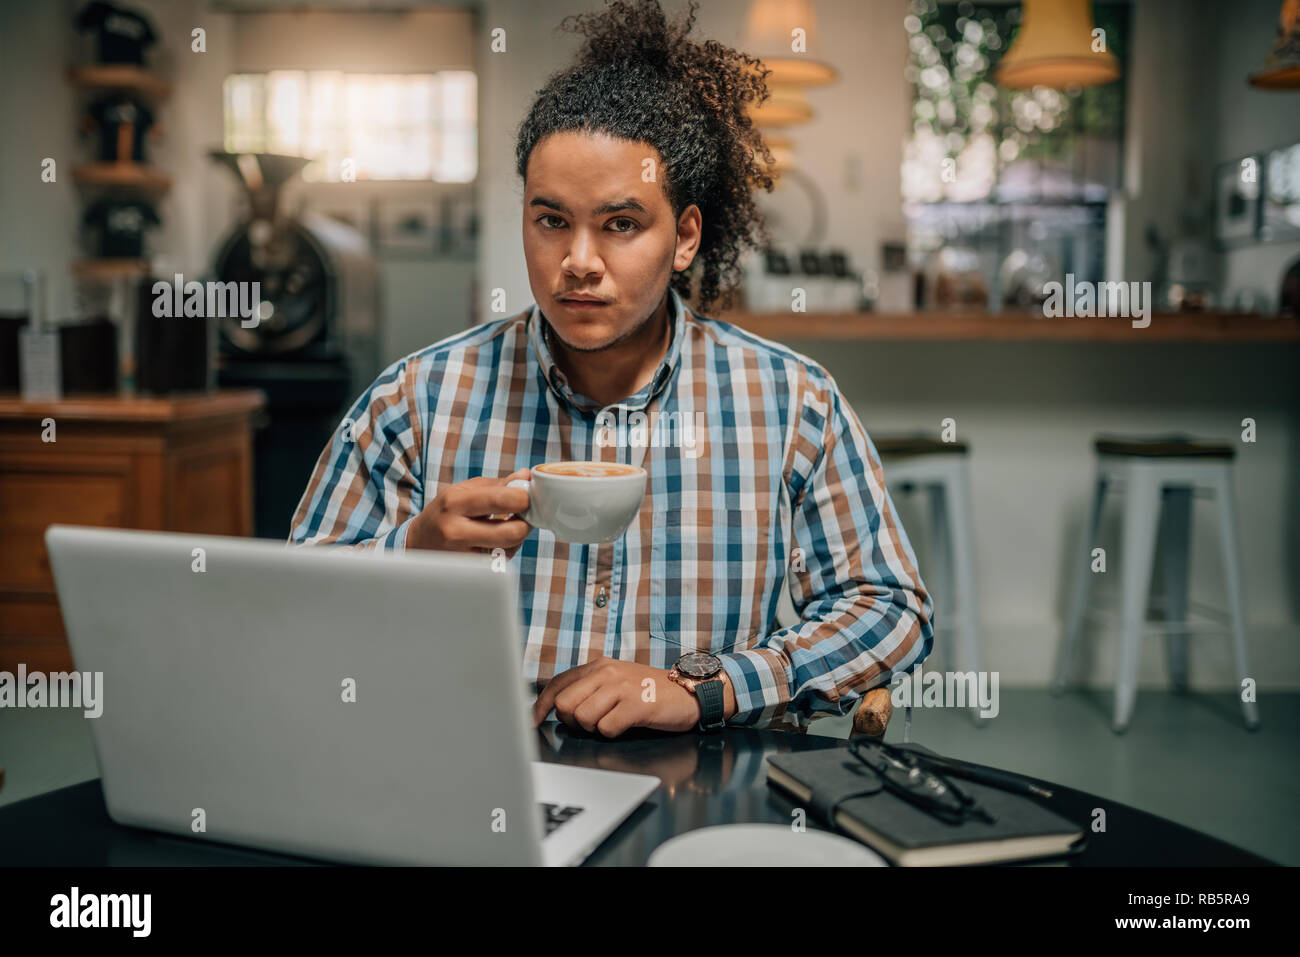 Portrait of a young handsome mixed race guy with tied up afro, holding a cup off coffee behind his laptop - Stock Image